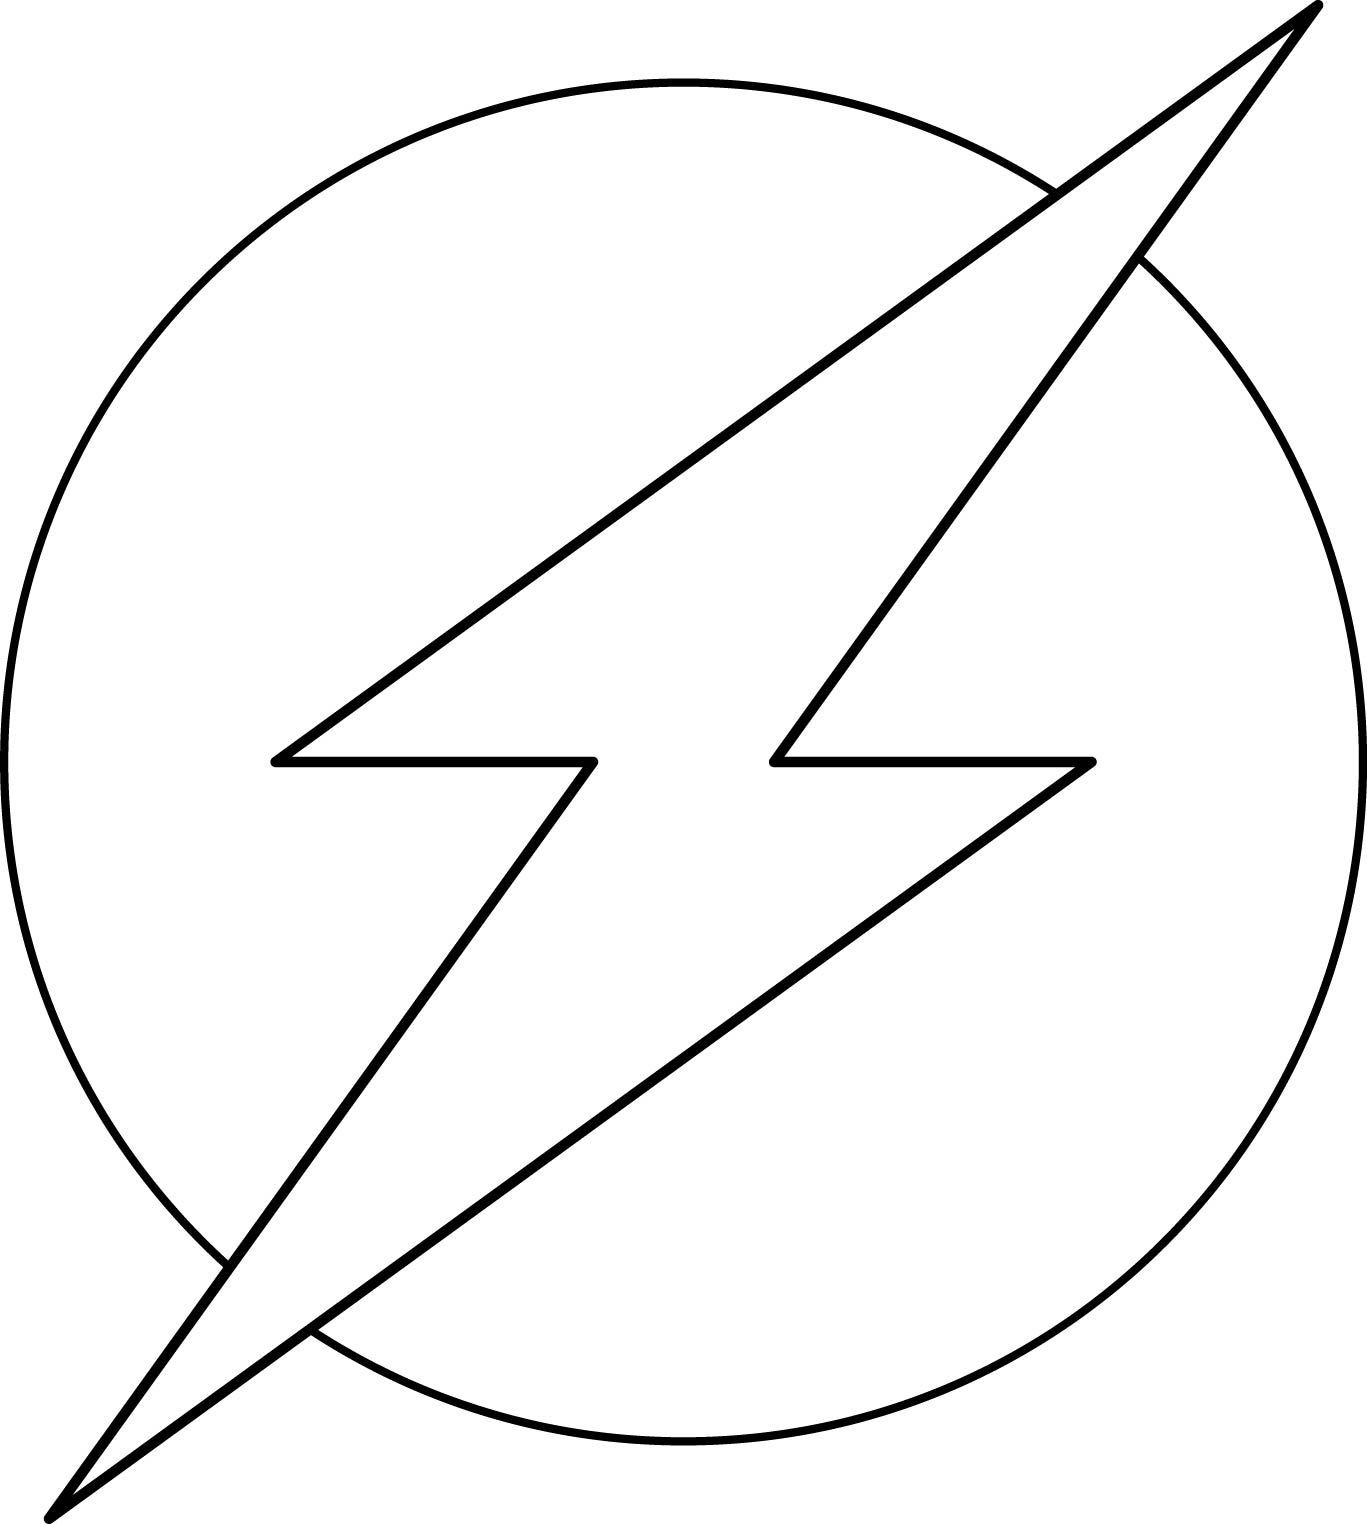 Flash Symbol Coloring Pages  Super Heroes Logos Coloring Pages Art